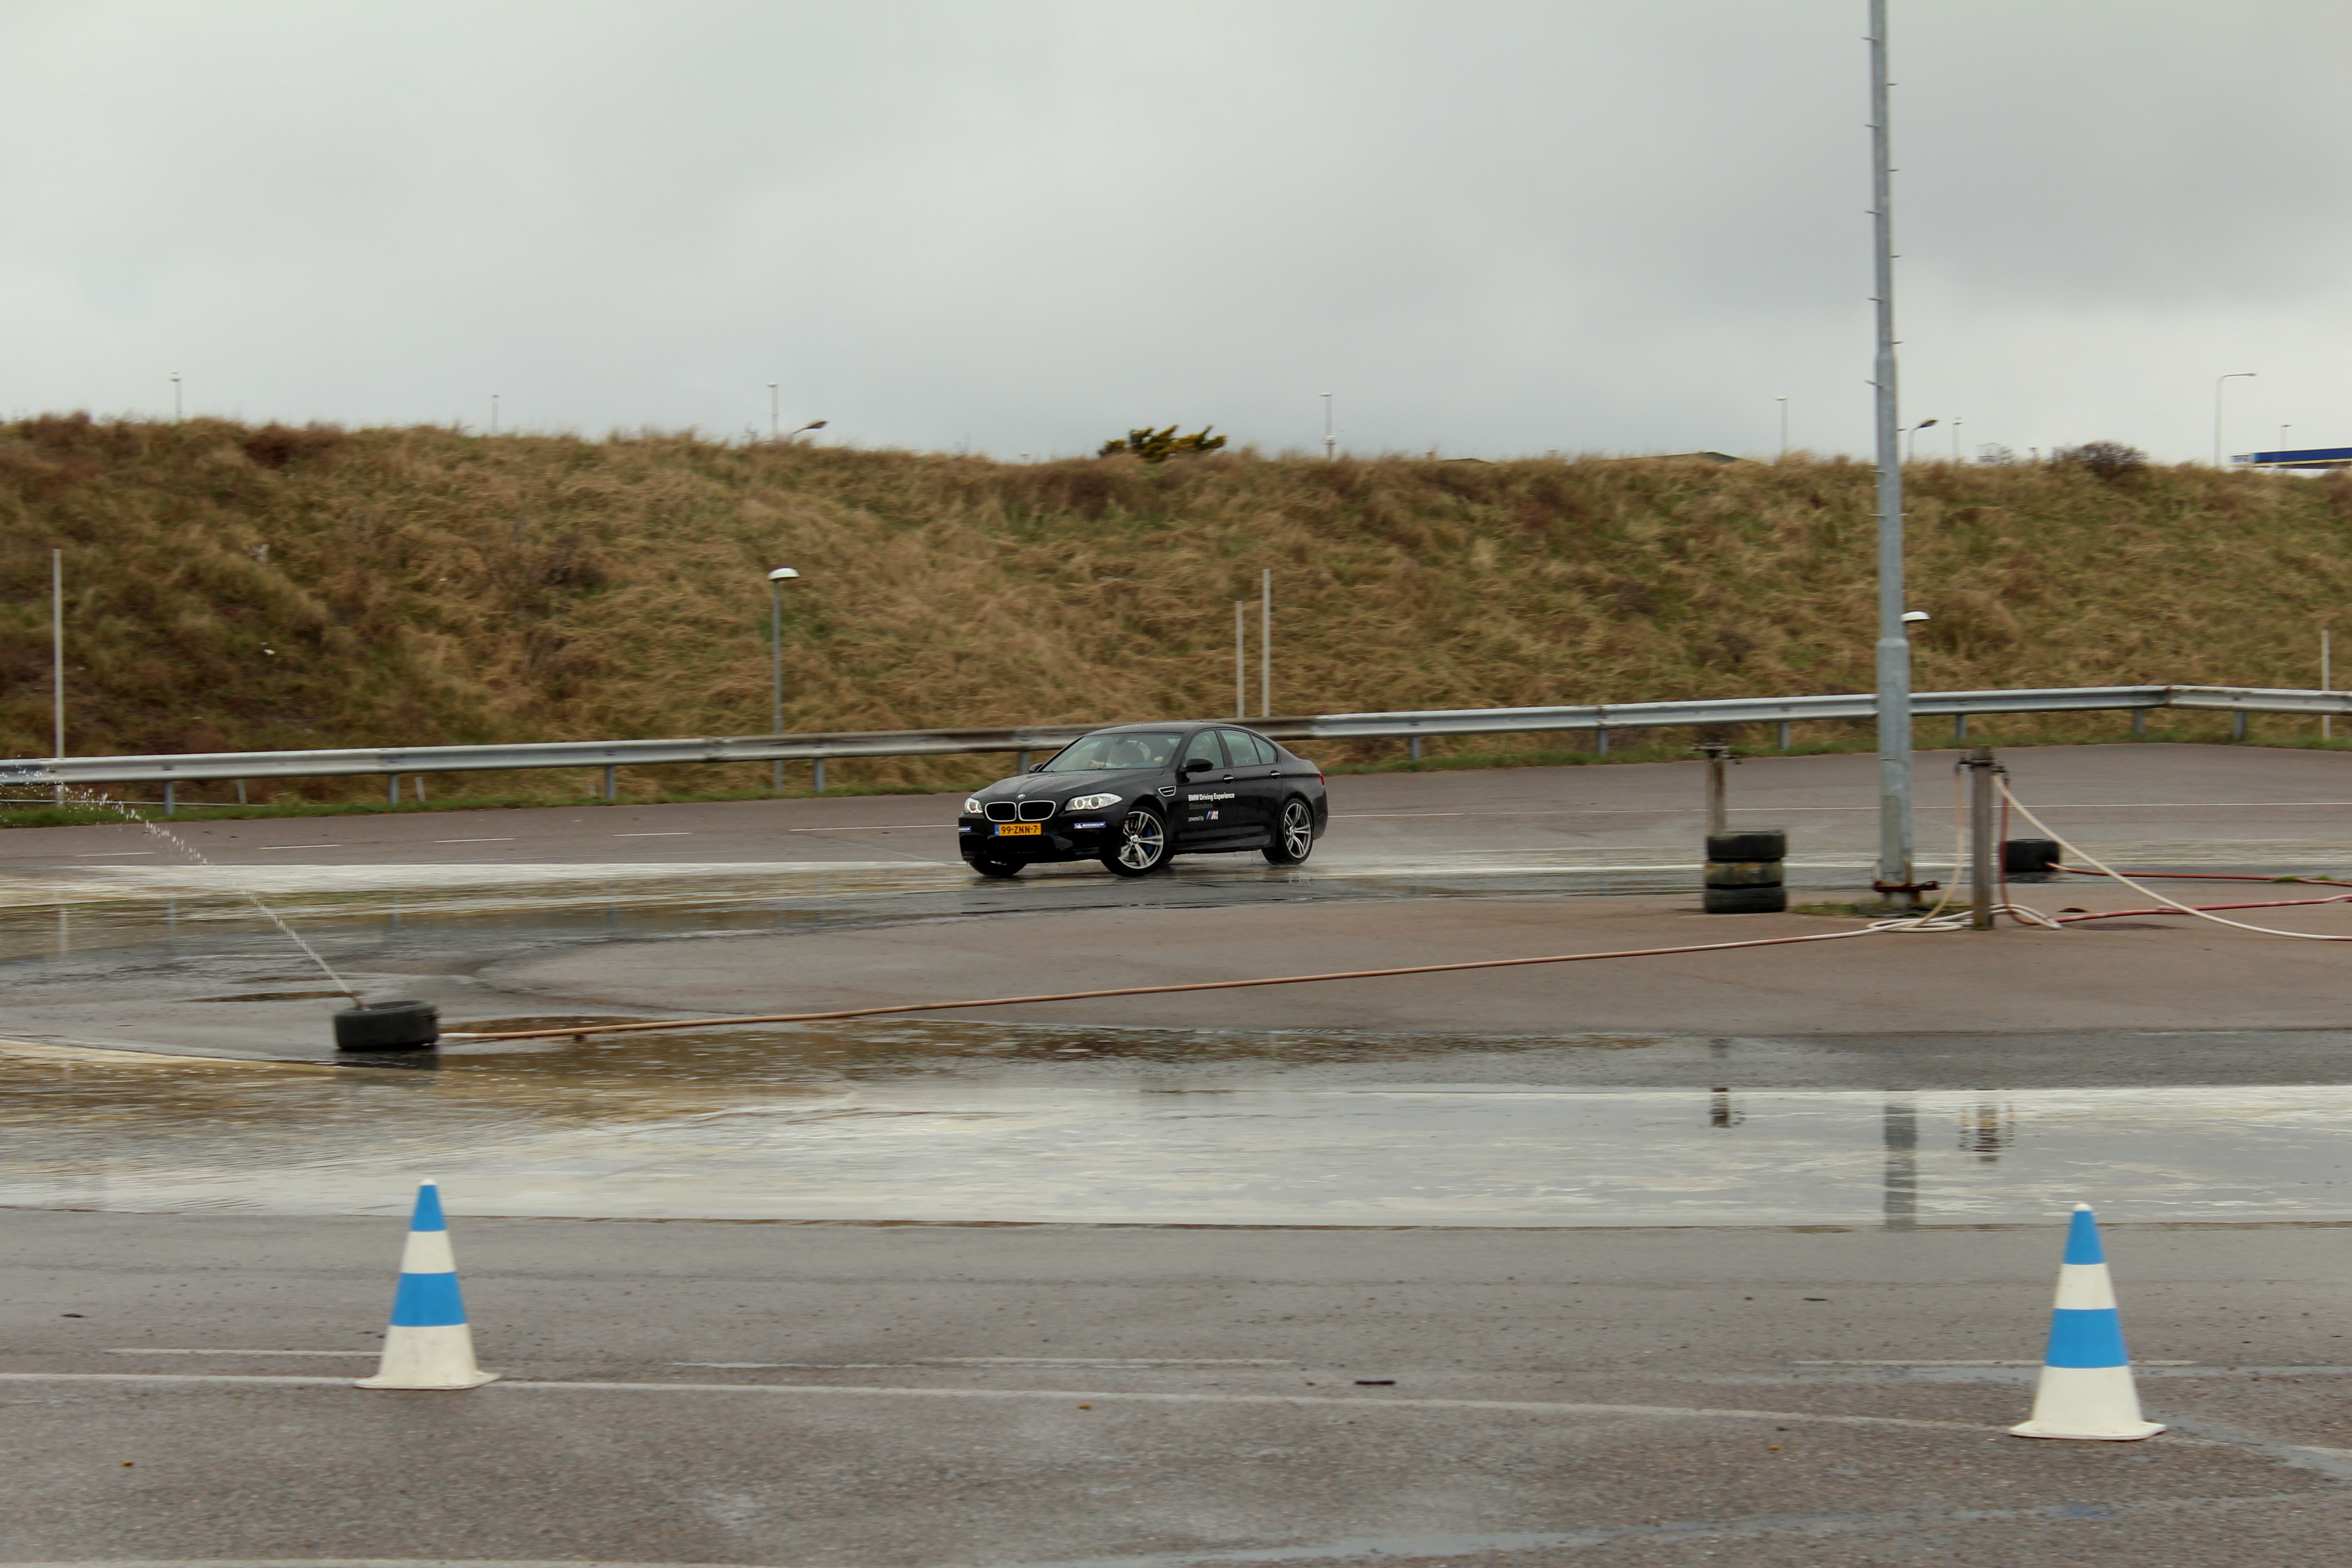 Michelin Driving Event - www.hartvoorautos.nl